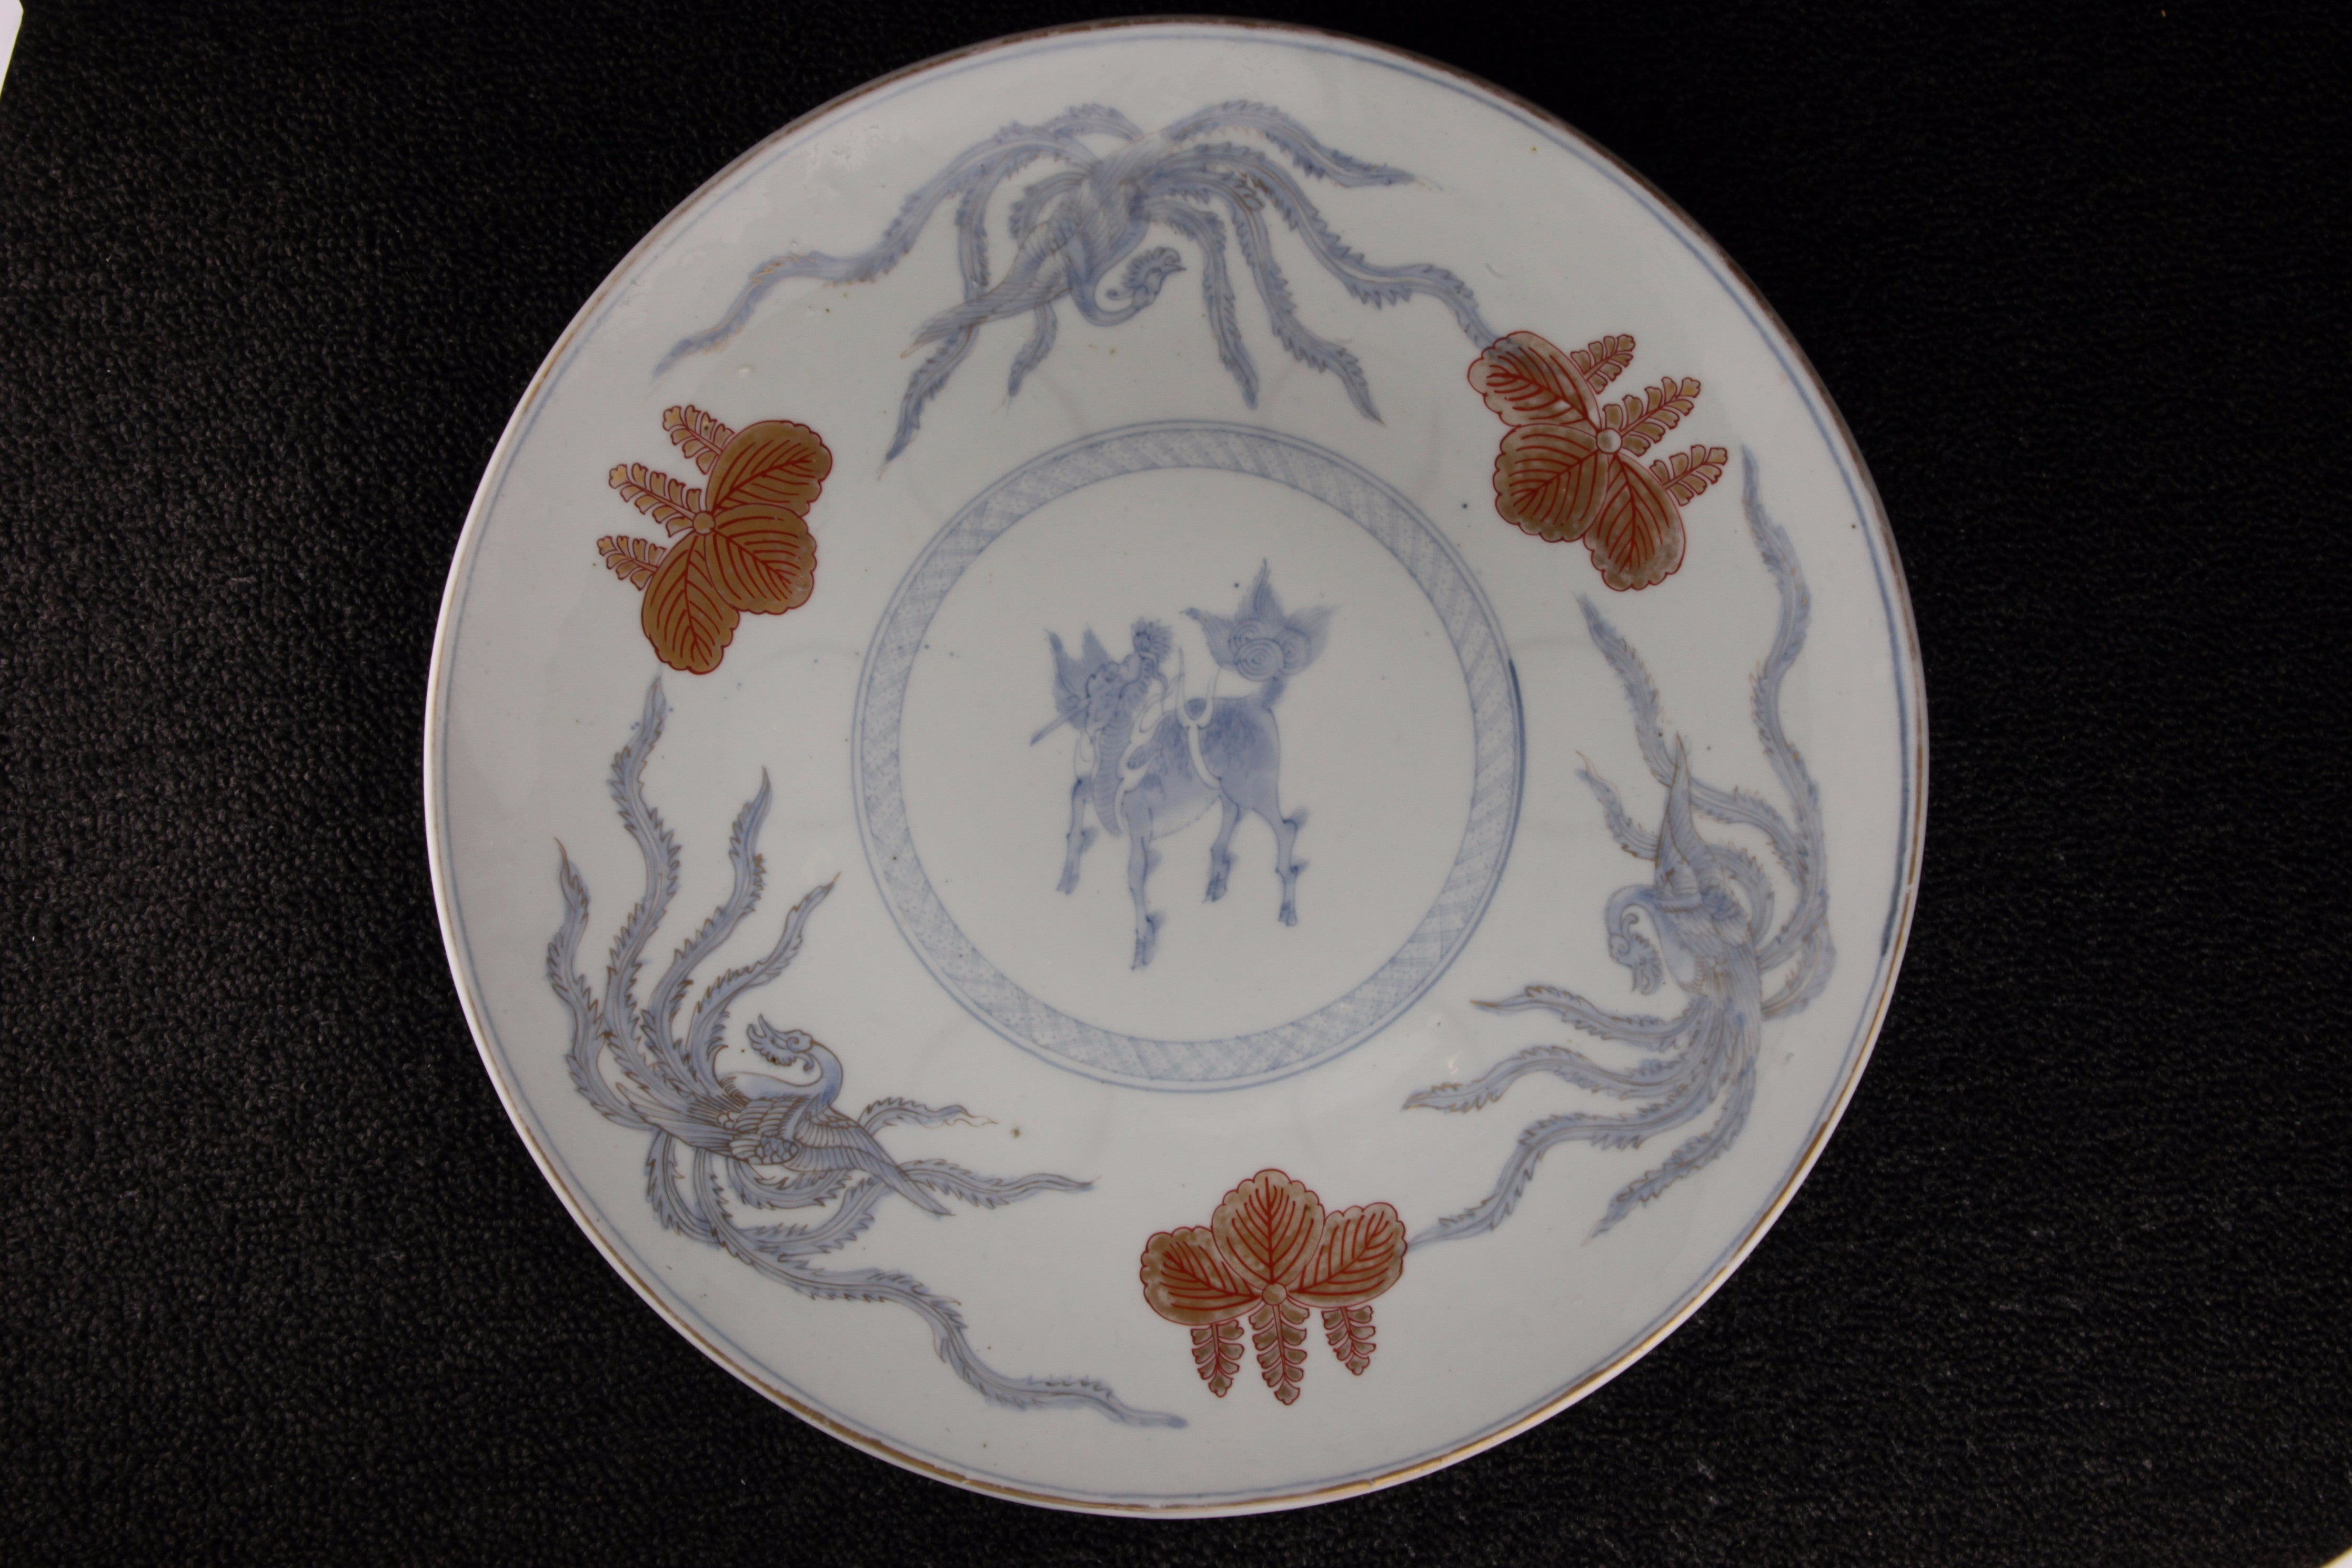 ANTIQUE IMARI BLUE AND WHITE PORCELAIN FOXGLOVE TREE PATTERN LARGE PLATE ... & BLOWING INK FLOWER AND BIRD PATTERN LARGE PLATE   TLS Living